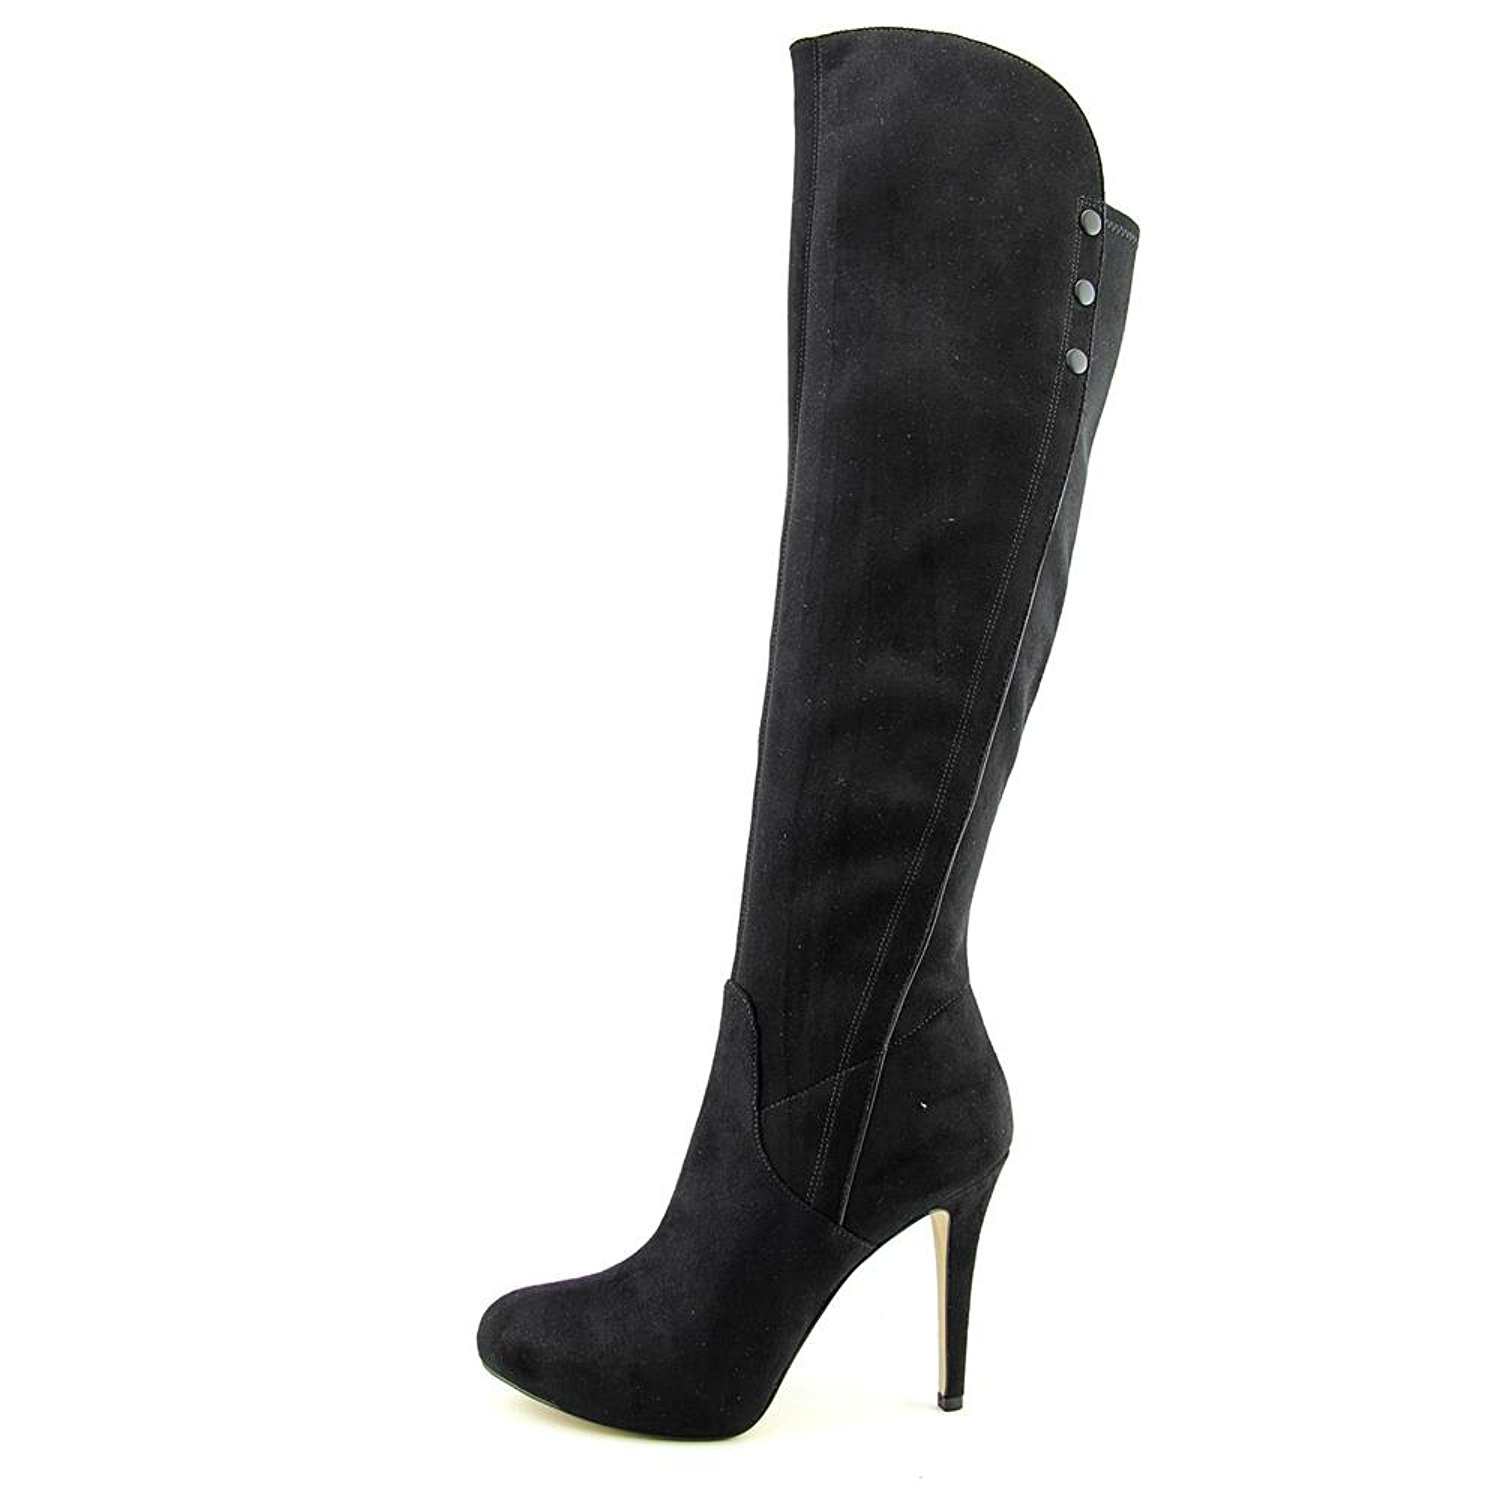 GUESS Womens Enesta 2 Closed Toe Knee High Fashion Boots Black Size 9.5 SEHv